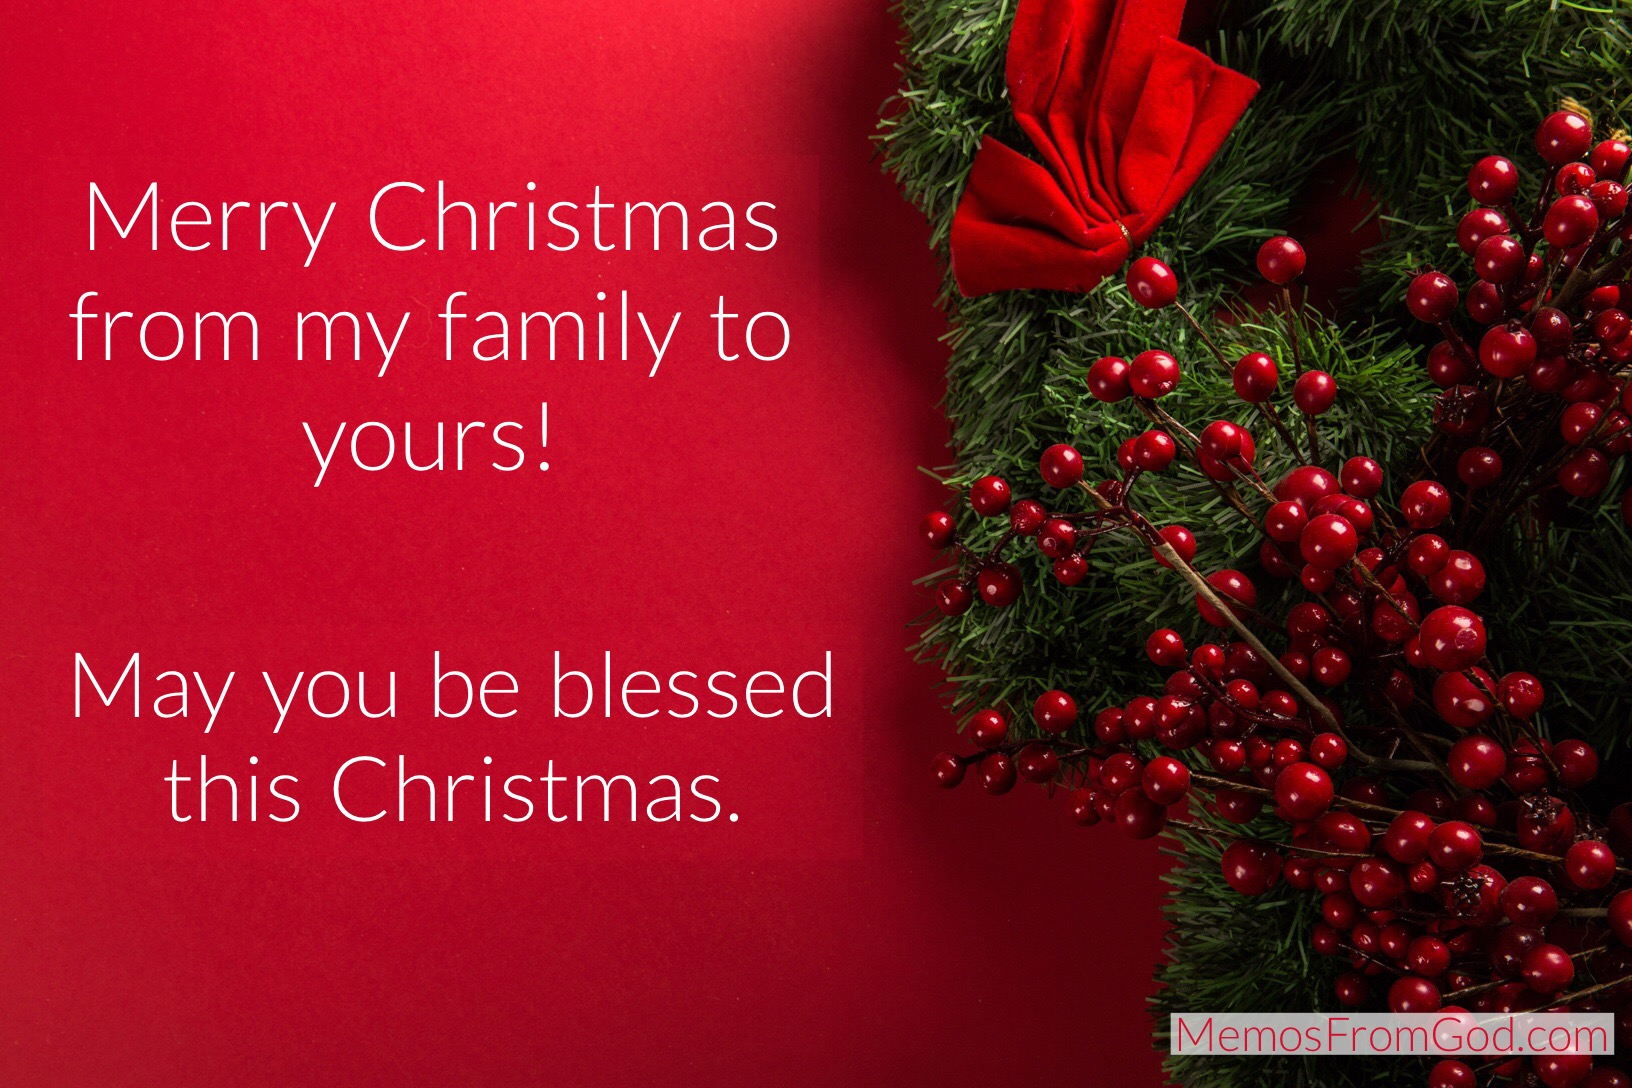 Merry Christmas from my family to yours! May you be blessed this Christmas.